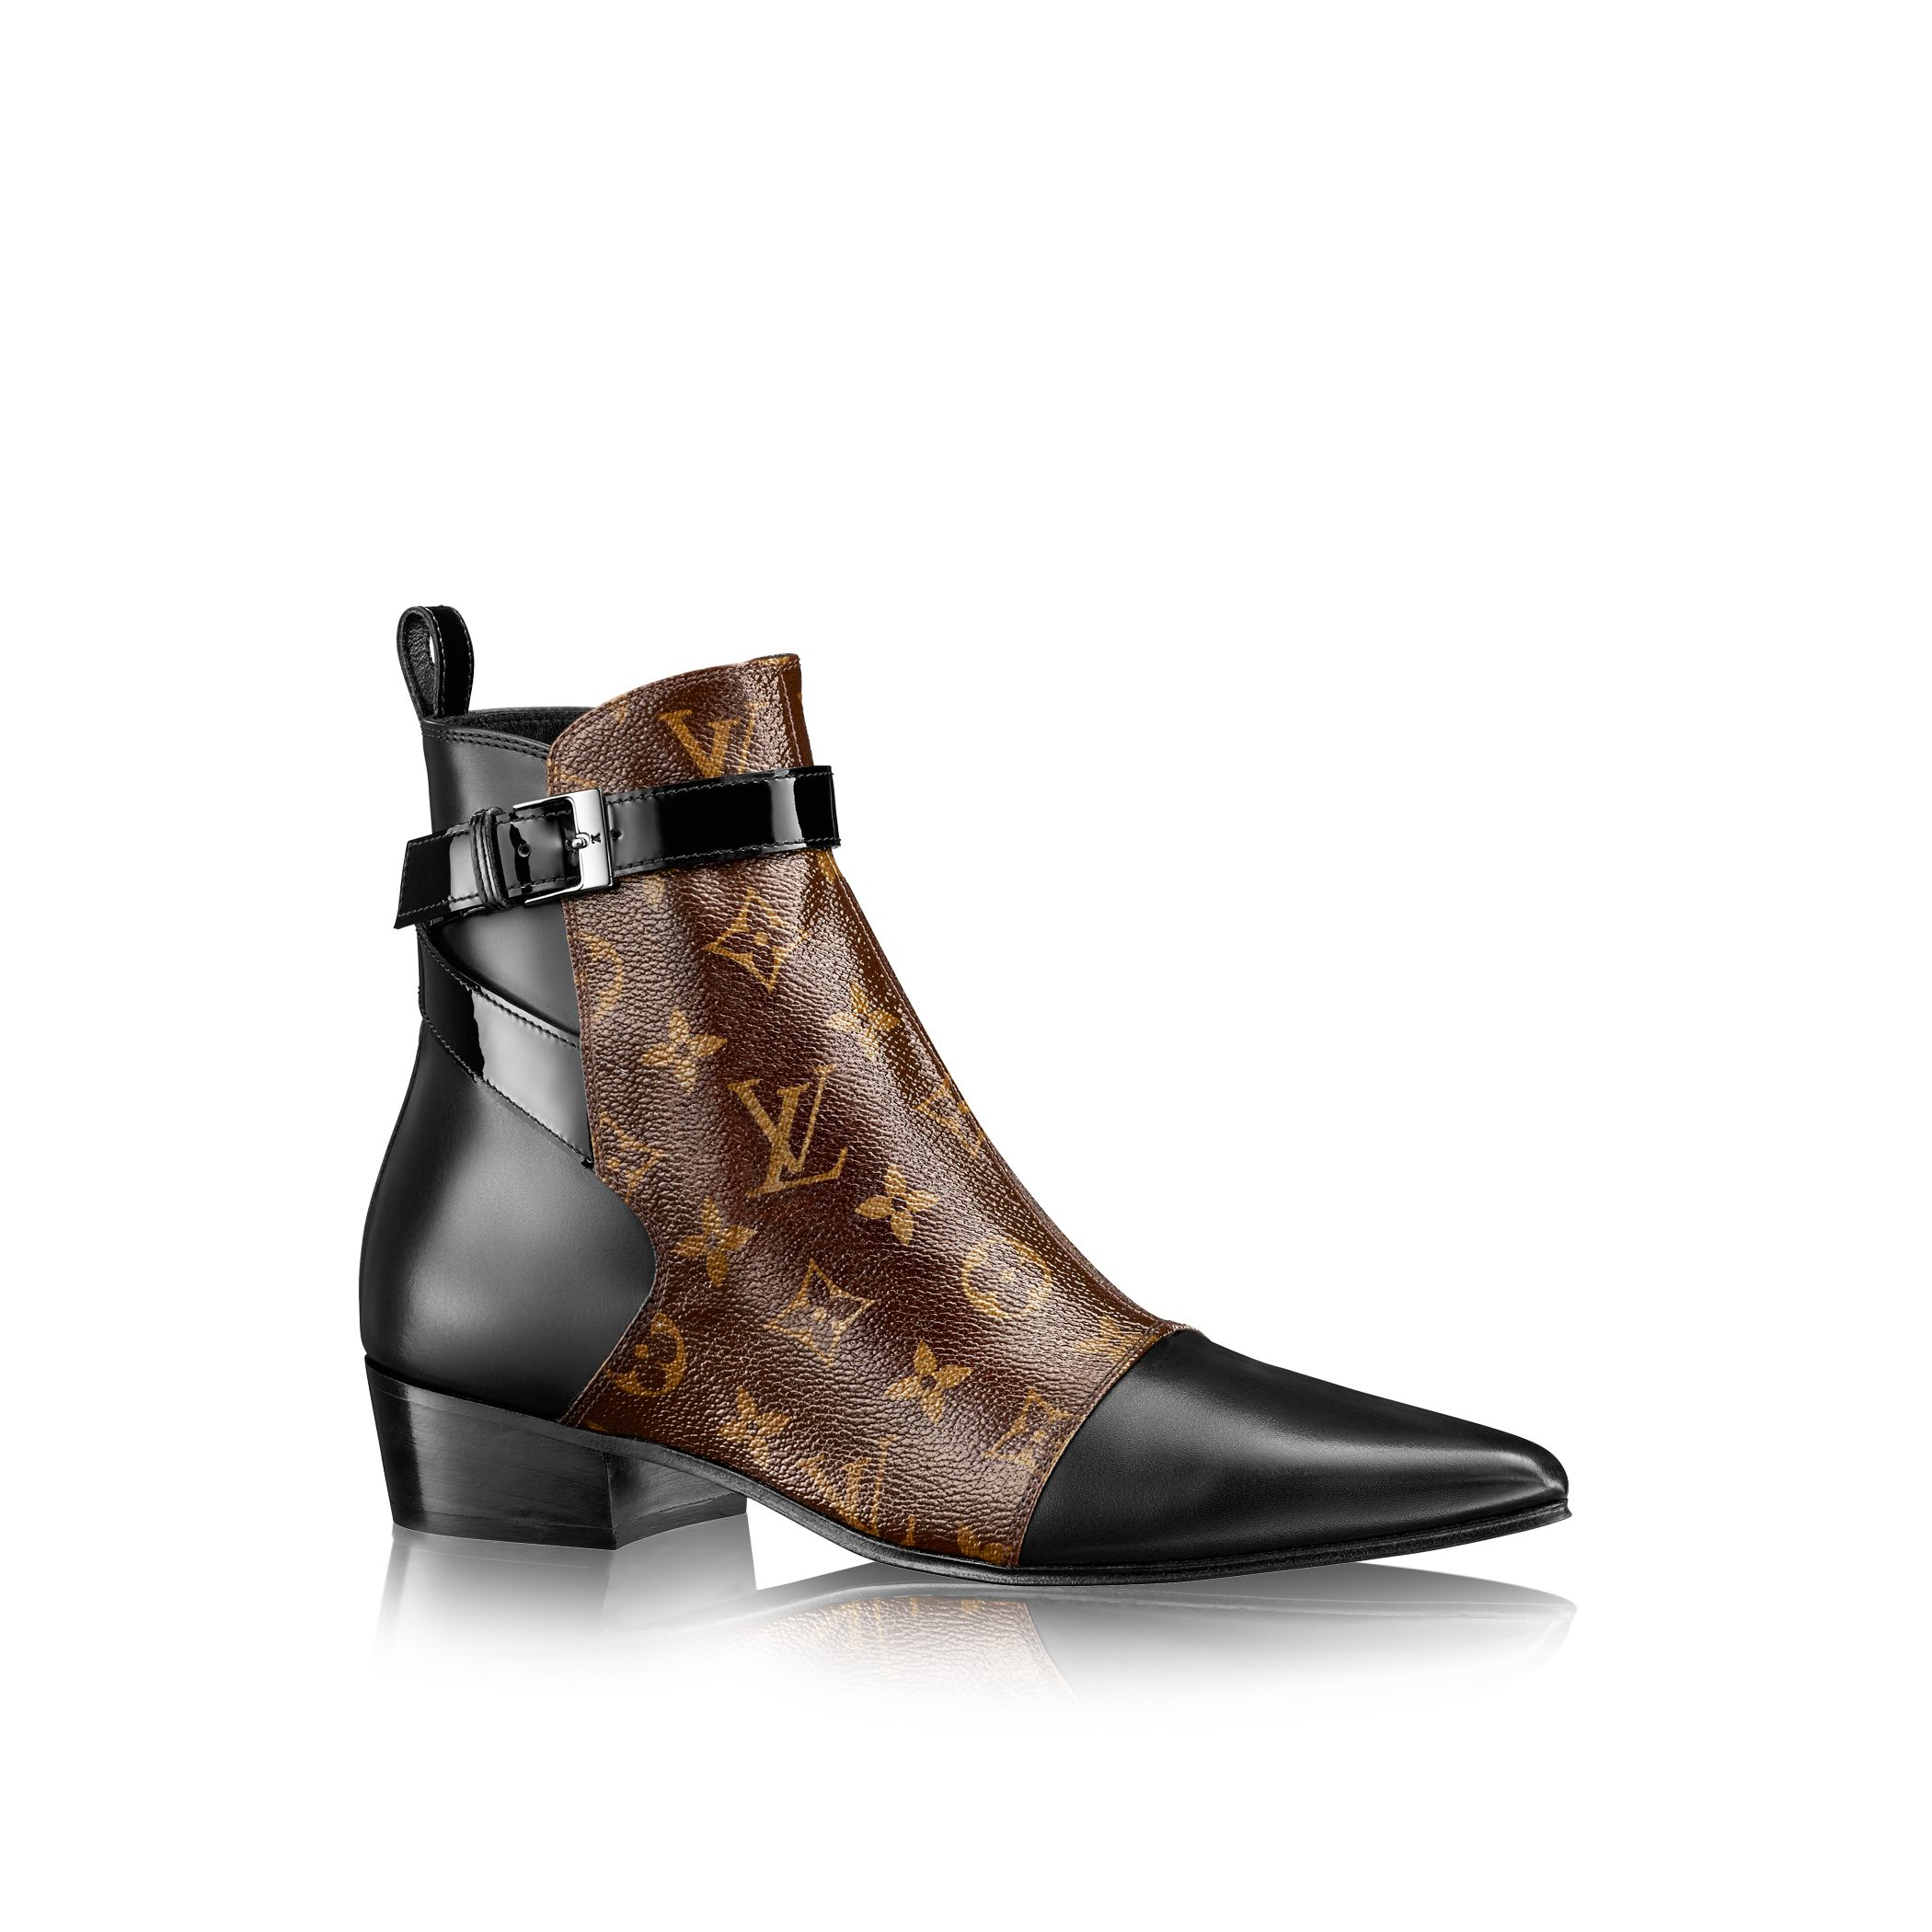 Louis Vuitton Shoes Online In India